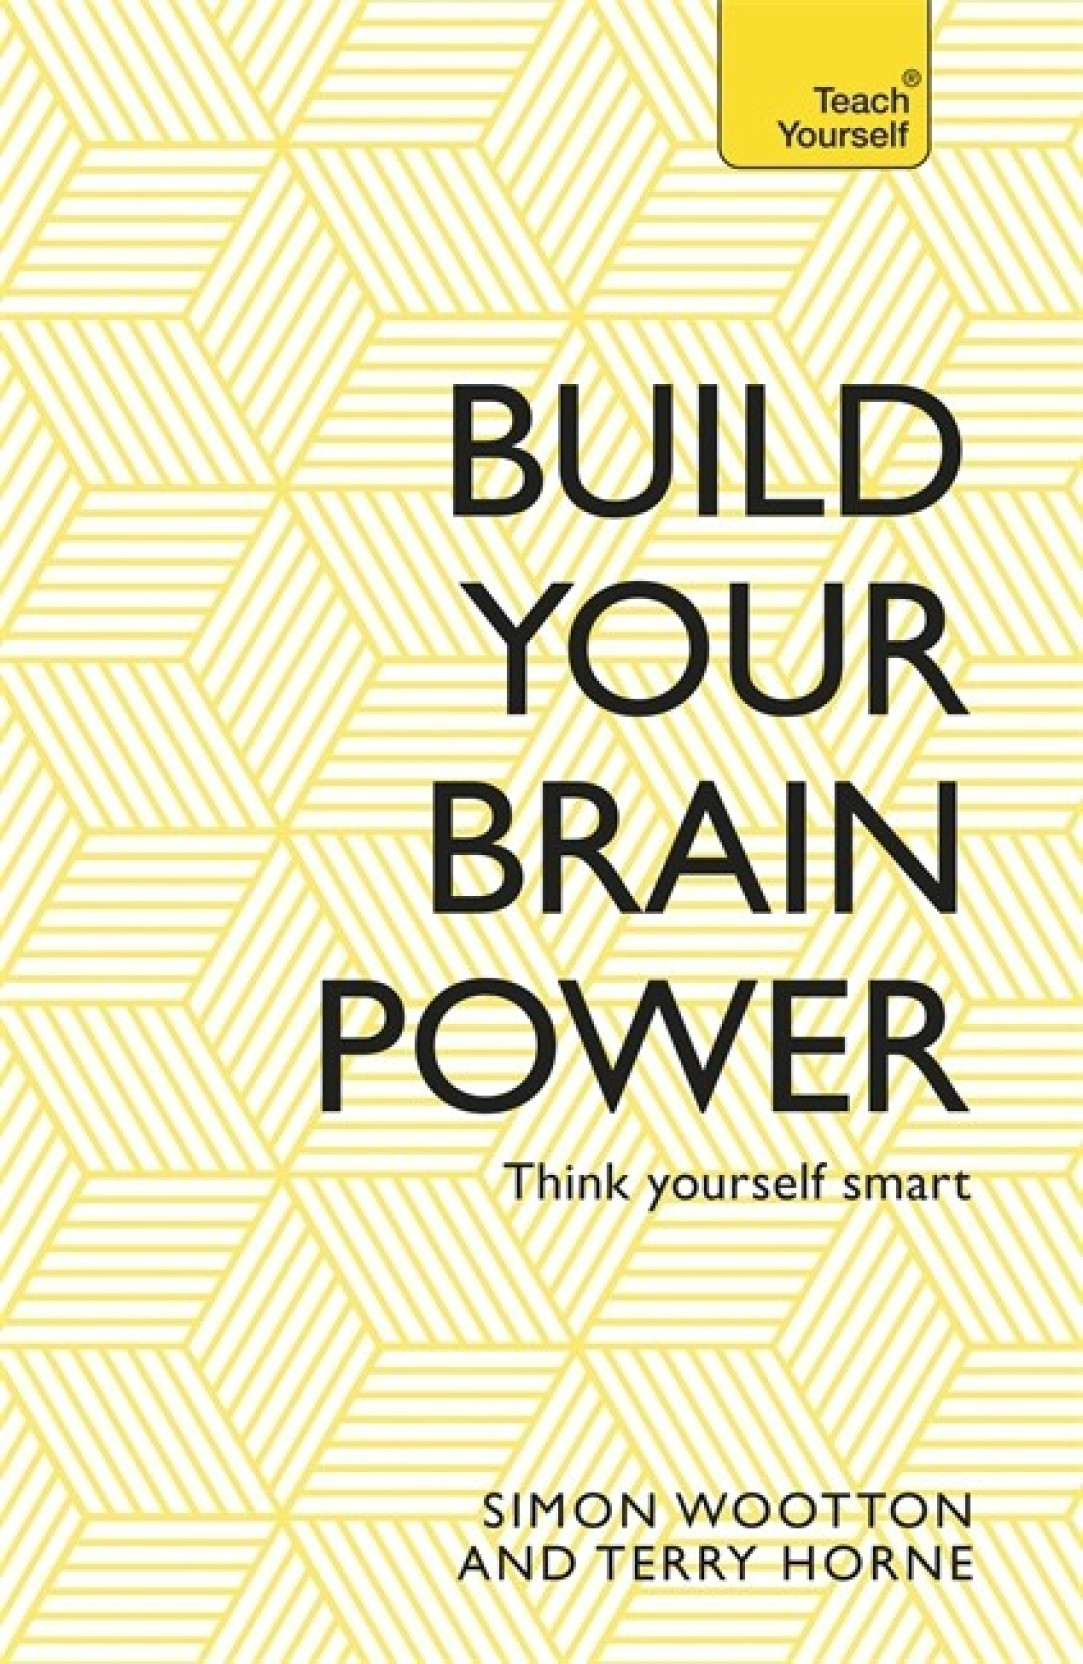 Build Your Brain Power: The Art of Smart Thinking. ADD TO CART